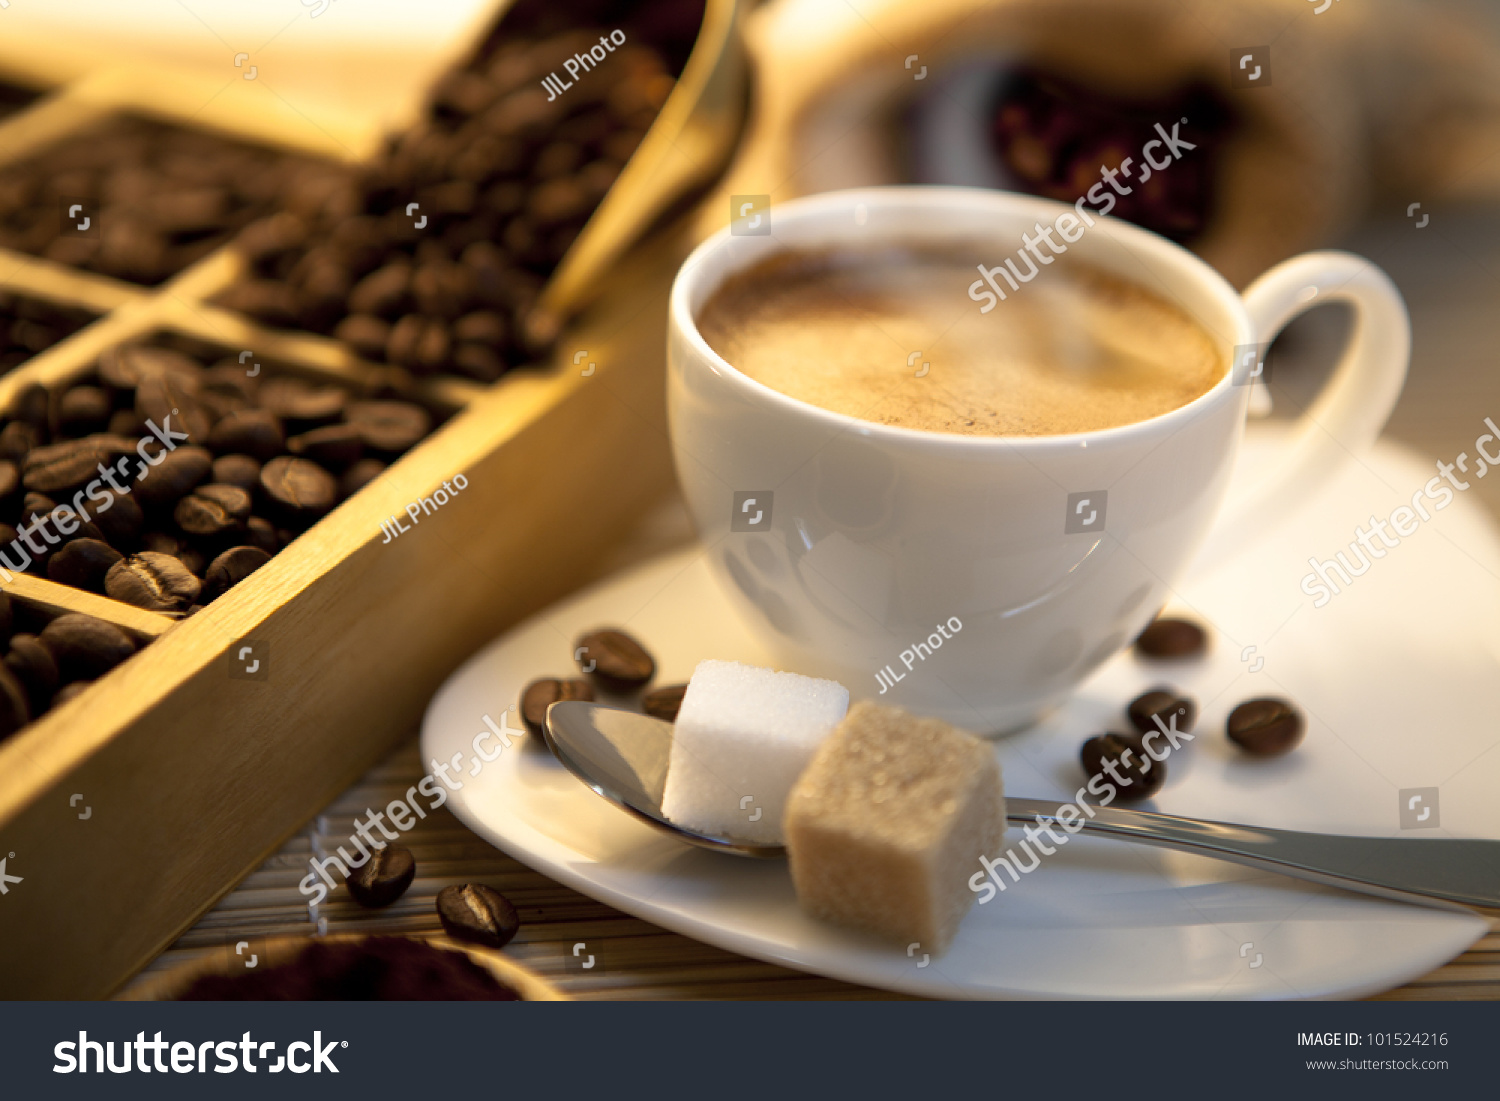 Costa Coffee Arabica Robusta Tasting Coffee Arabica Coffee Brazilian Coffee Coffee